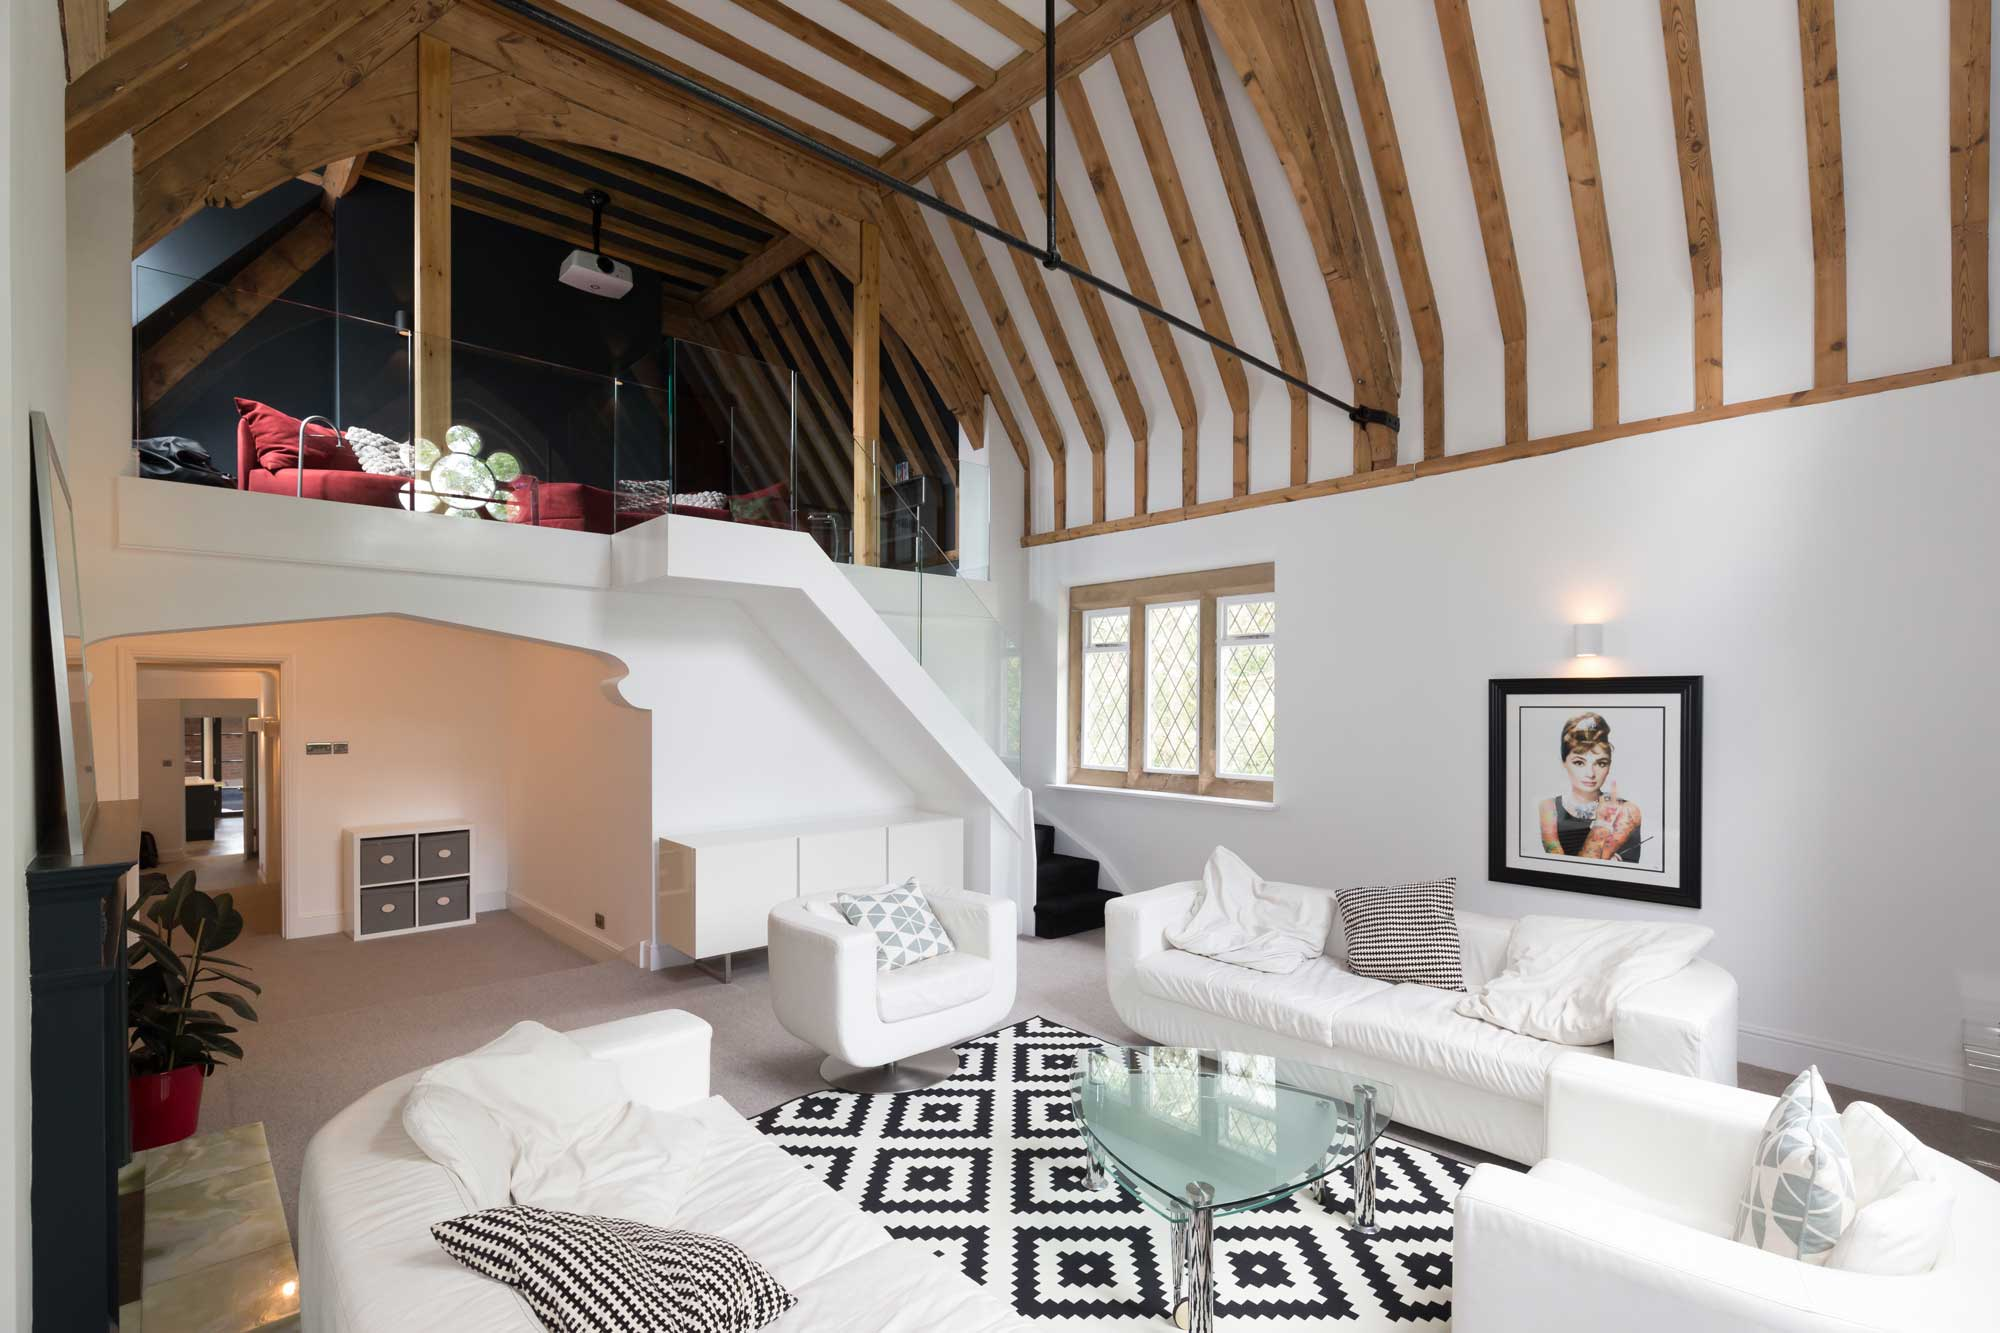 double height lounge vaulted ceiling exposed timber rafters vaulted ceiling, frameless glass staircase, floating stair, cinema room, balcony